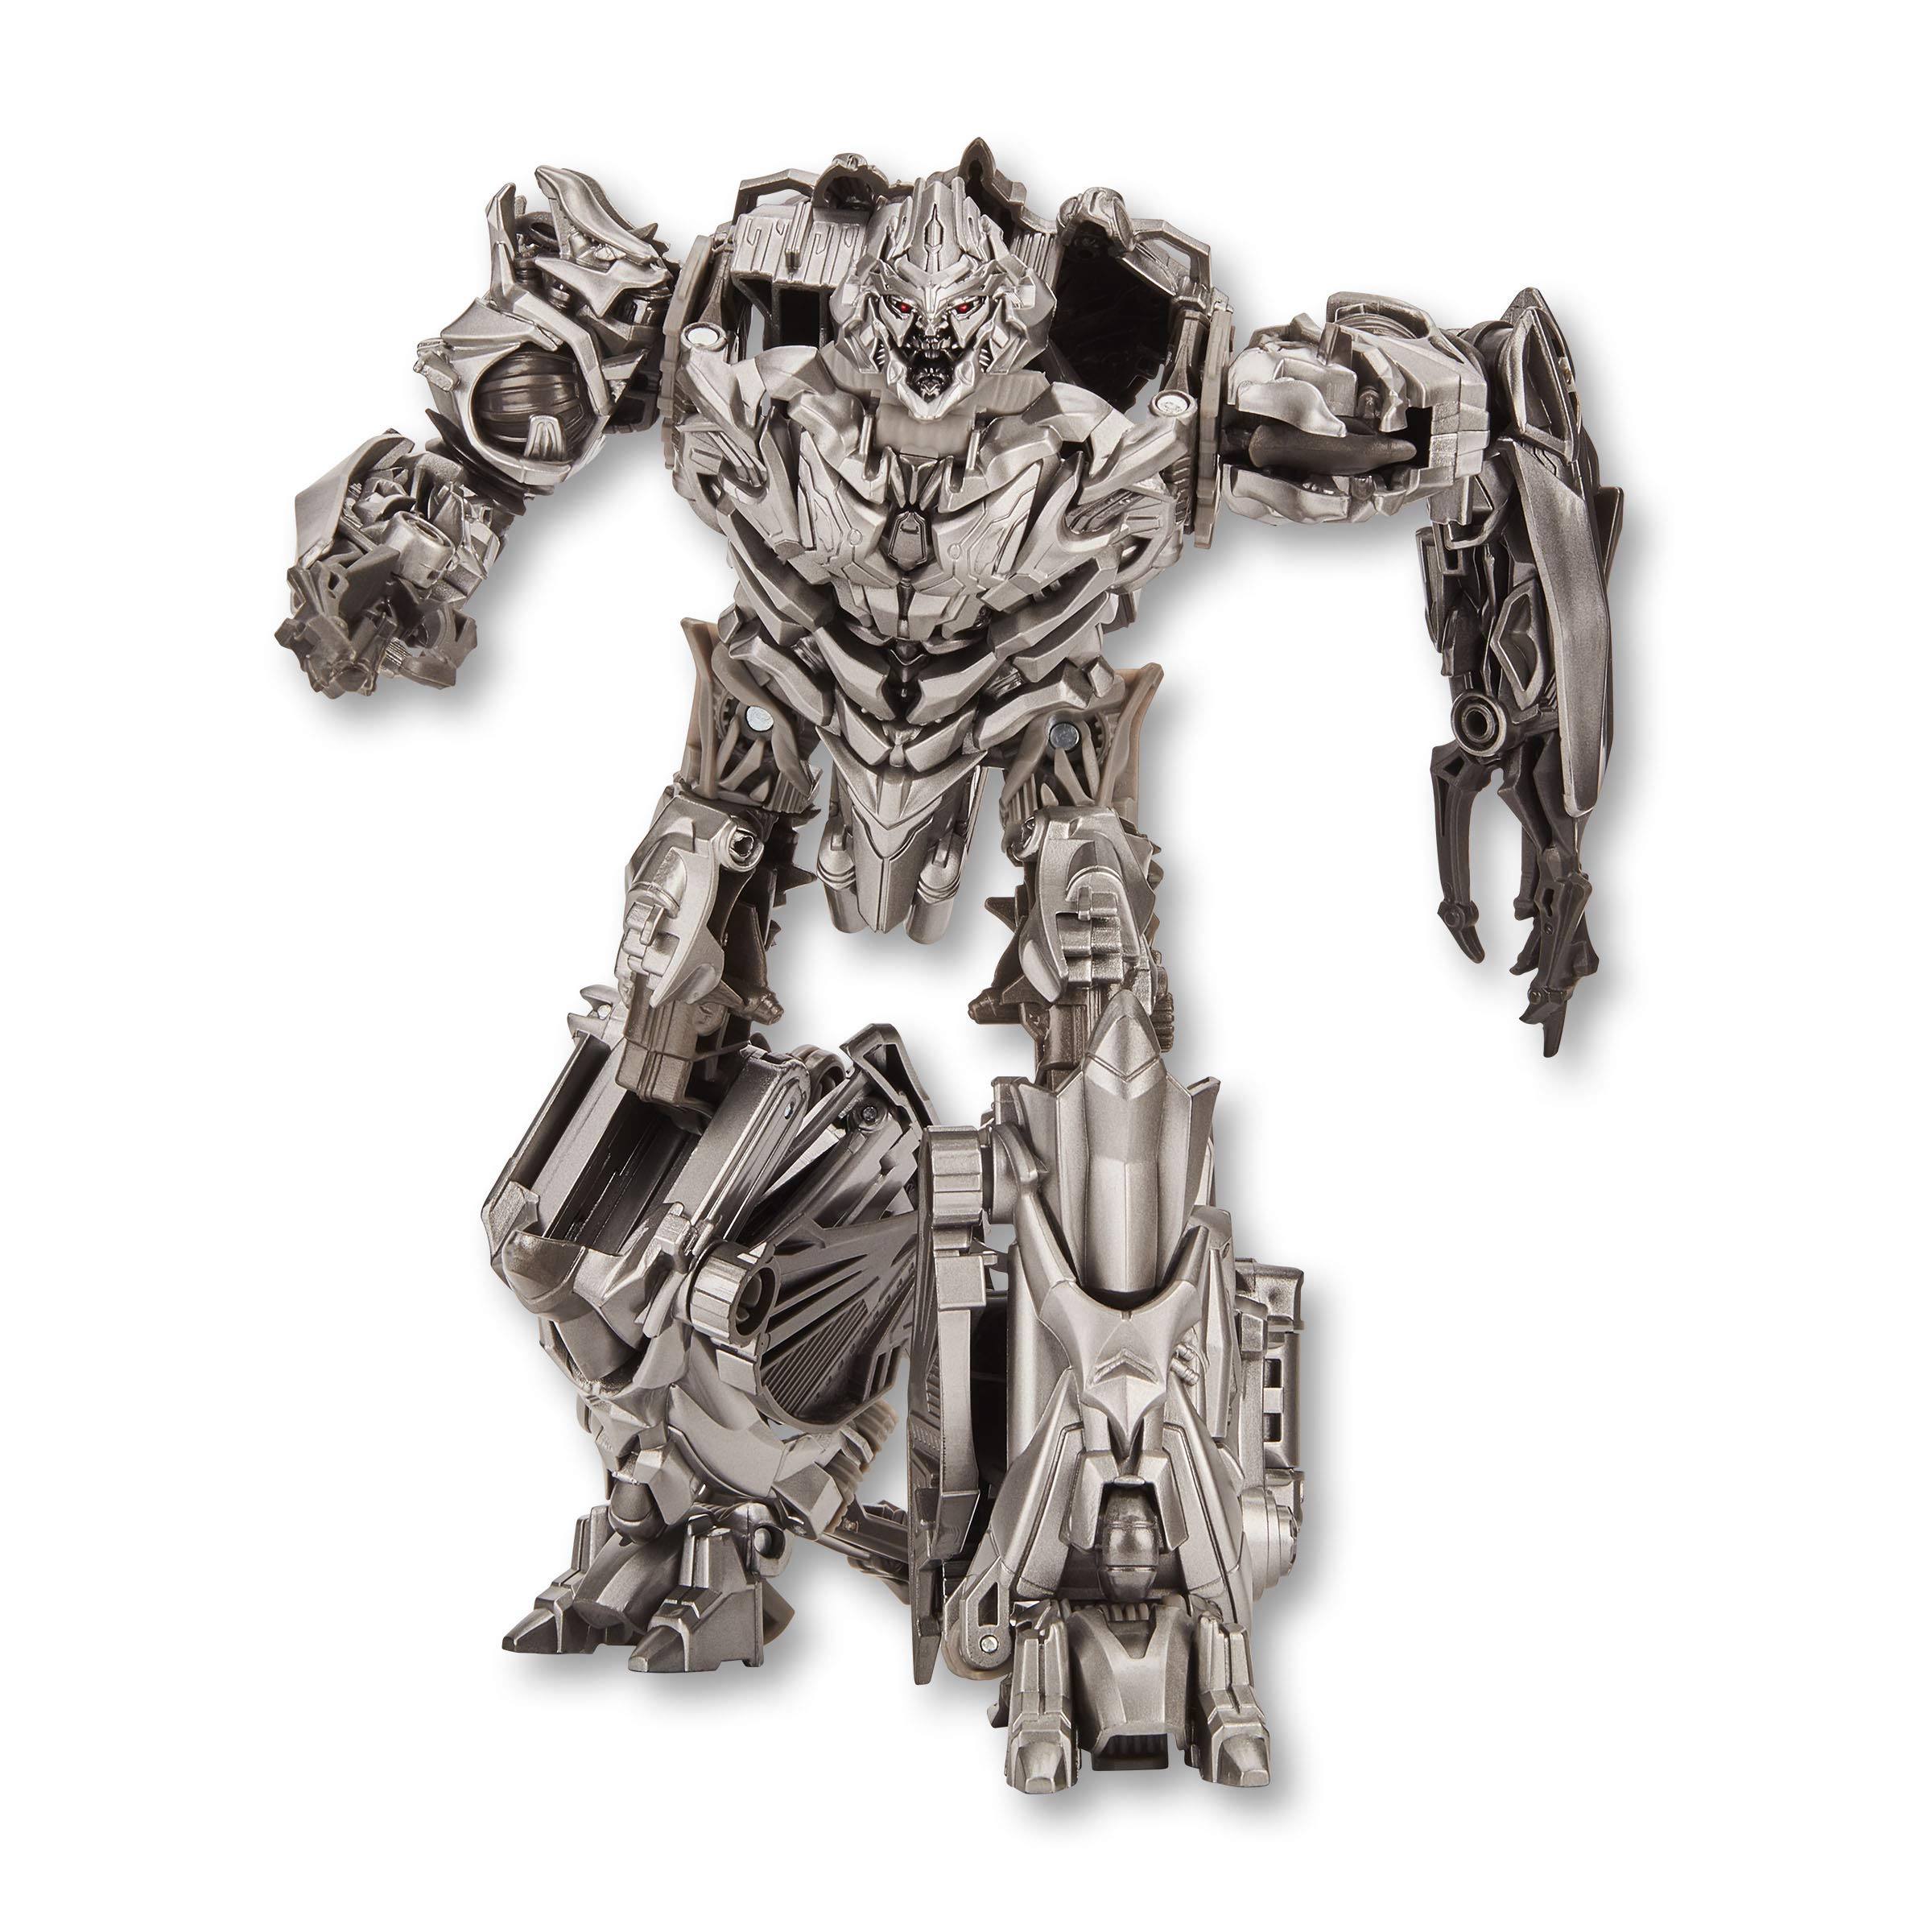 Transformers Toys Studio Series 54 Voyager Class Movie 1 Megatron Action Figure - Ages 8 & Up, 6.5""